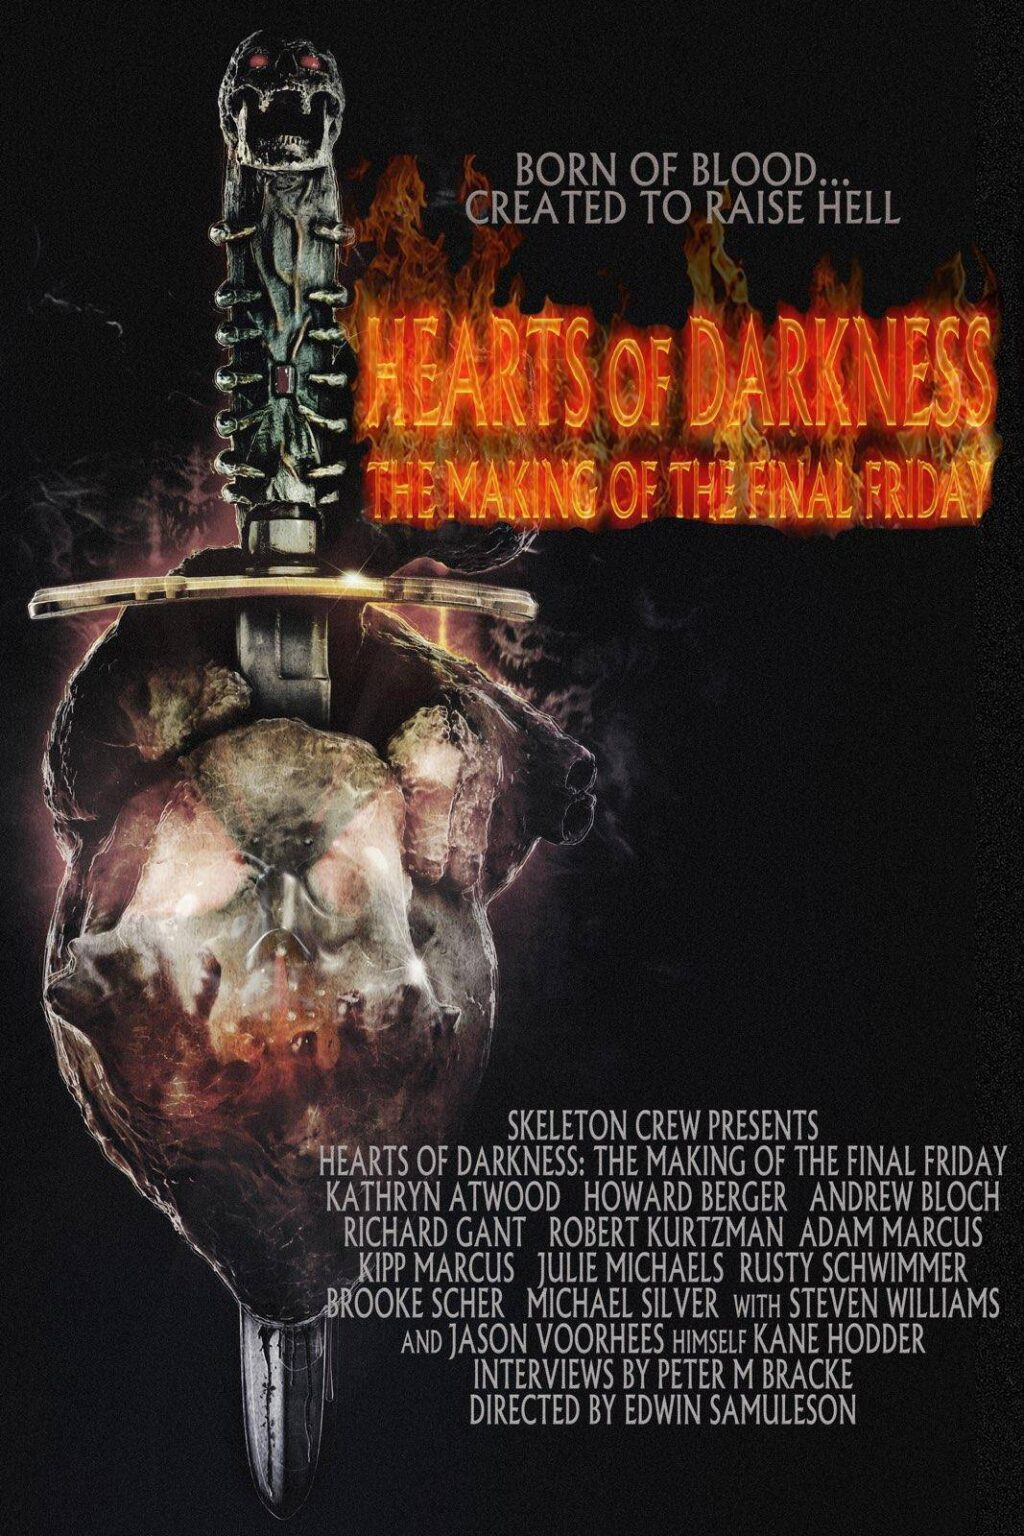 IMG 6595 1024x1536 - HEARTS OF DARKNESS: THE MAKING OF THE FINAL FRIDAY Launches Official Indiegogo Campaign